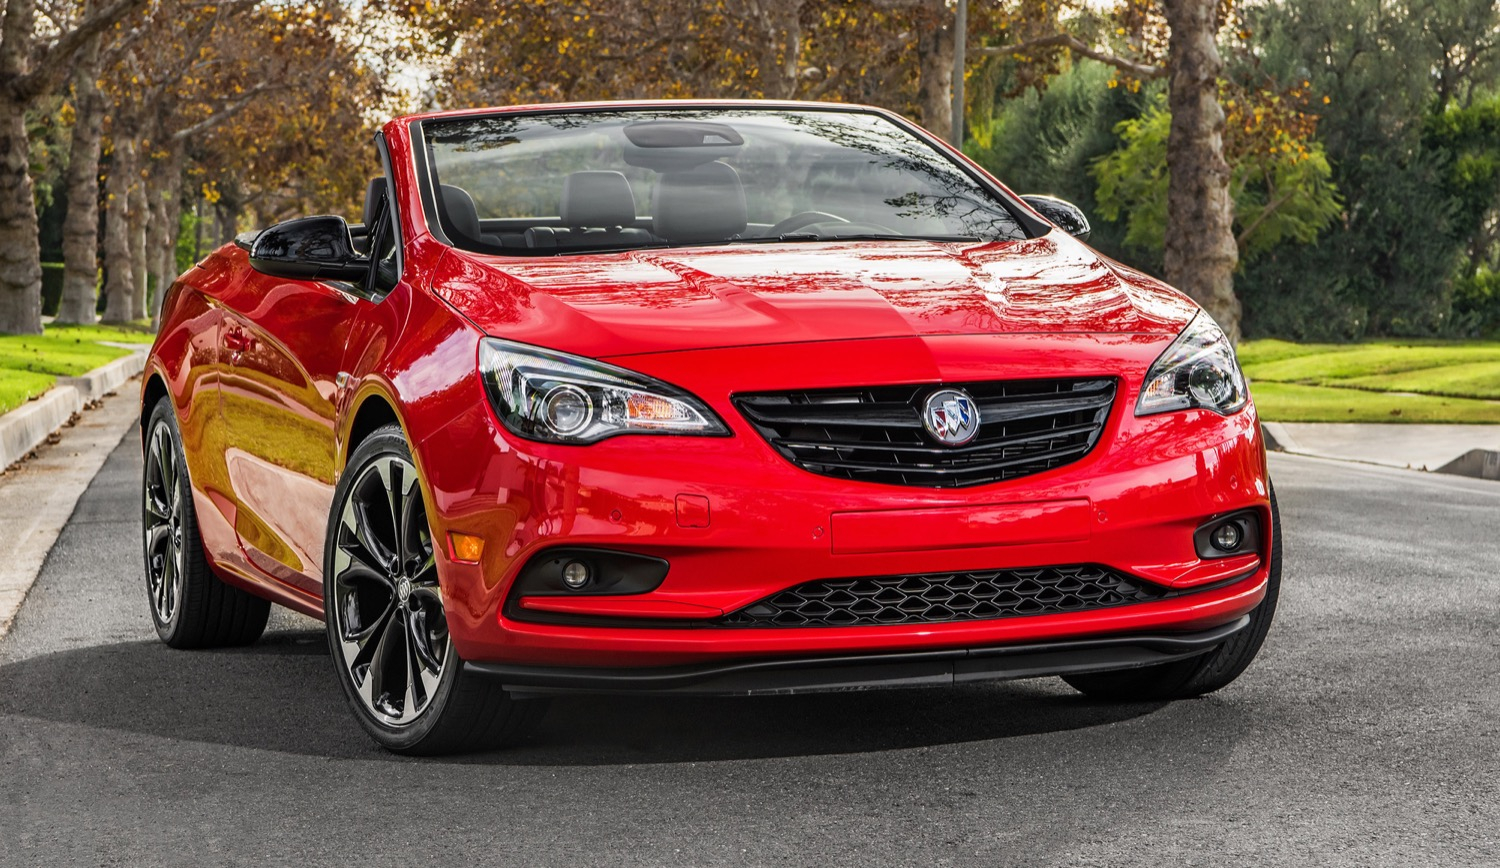 Buick Cascada Discount Cuts Price 16 Percent September 2019 2022 Buick Cascada Inventory, Images, Incentives